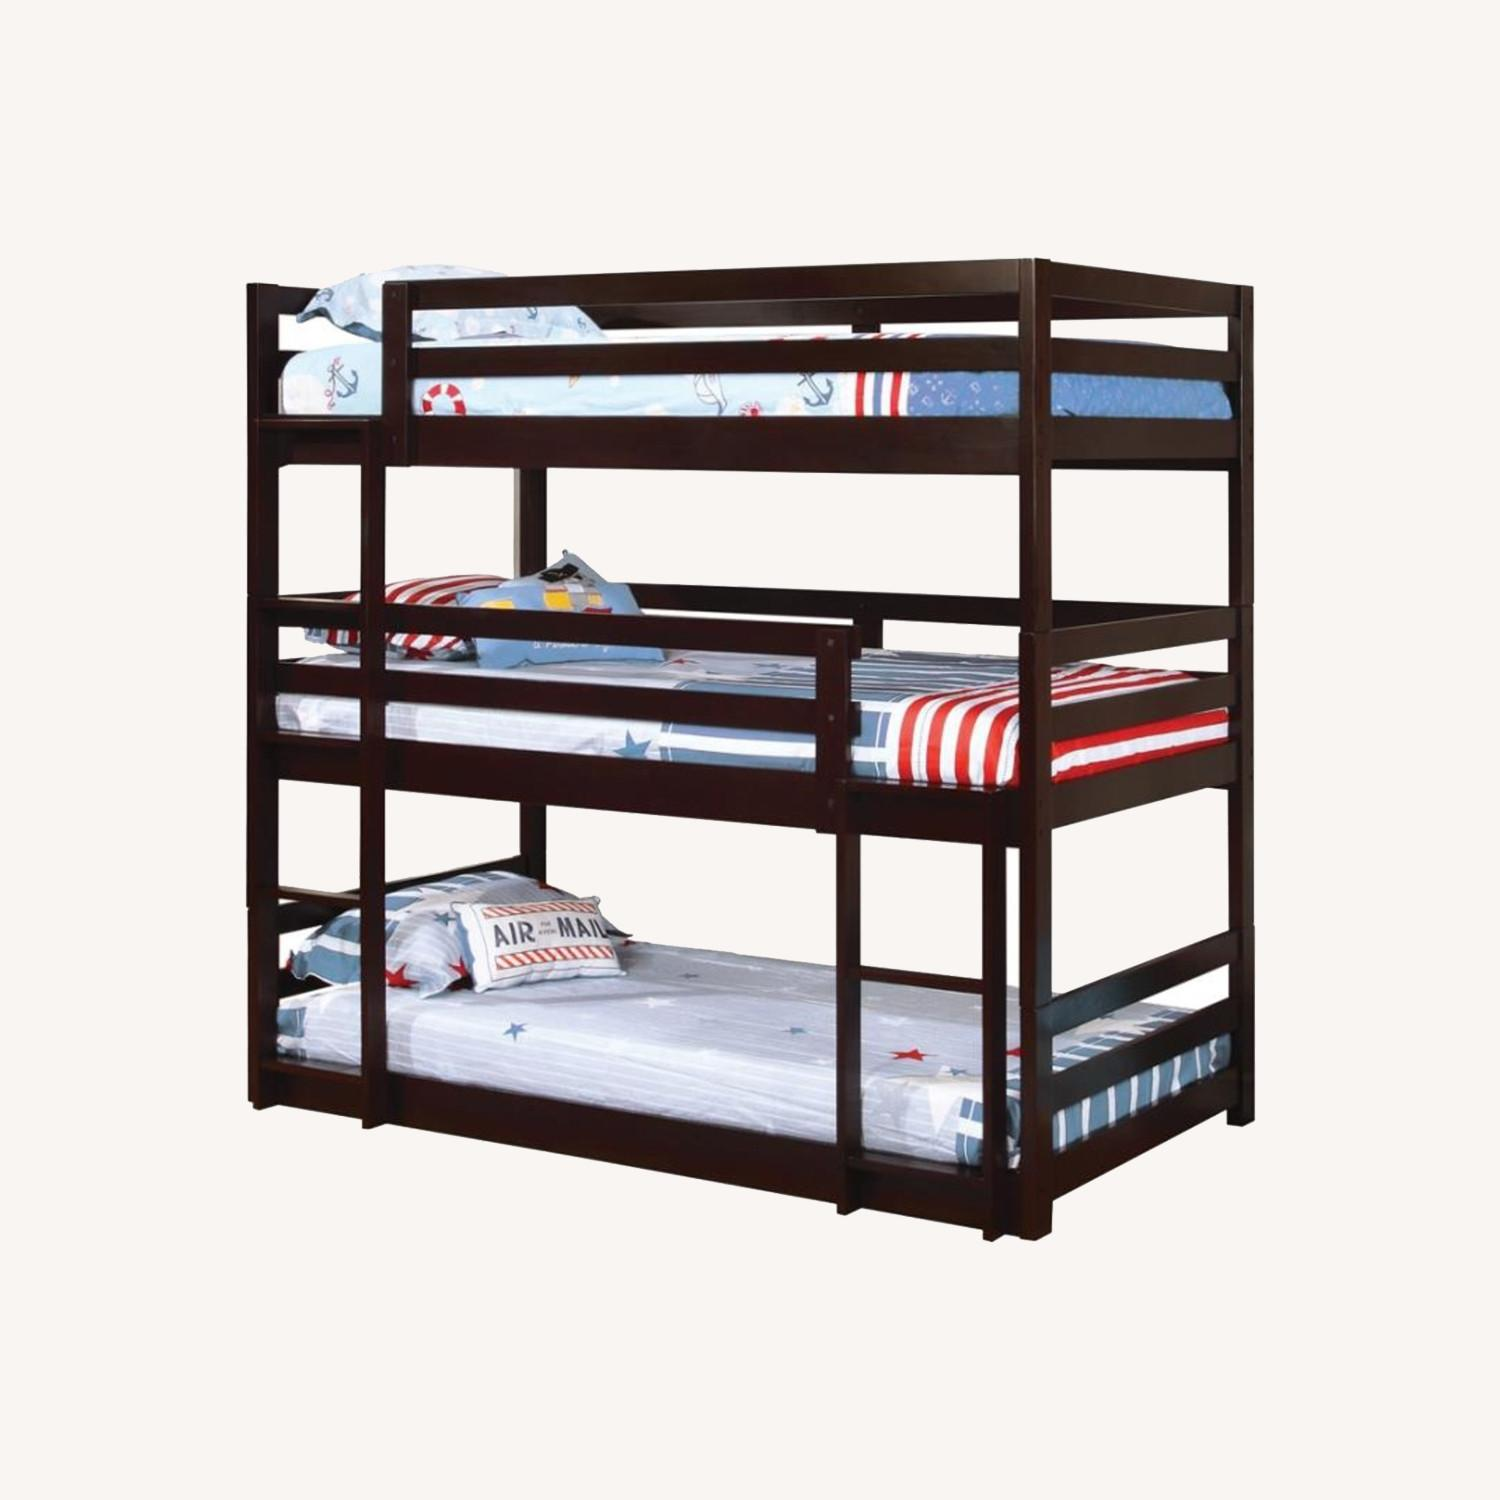 Triple Twin Bunk Bed In Cappuccino Finish - image-3